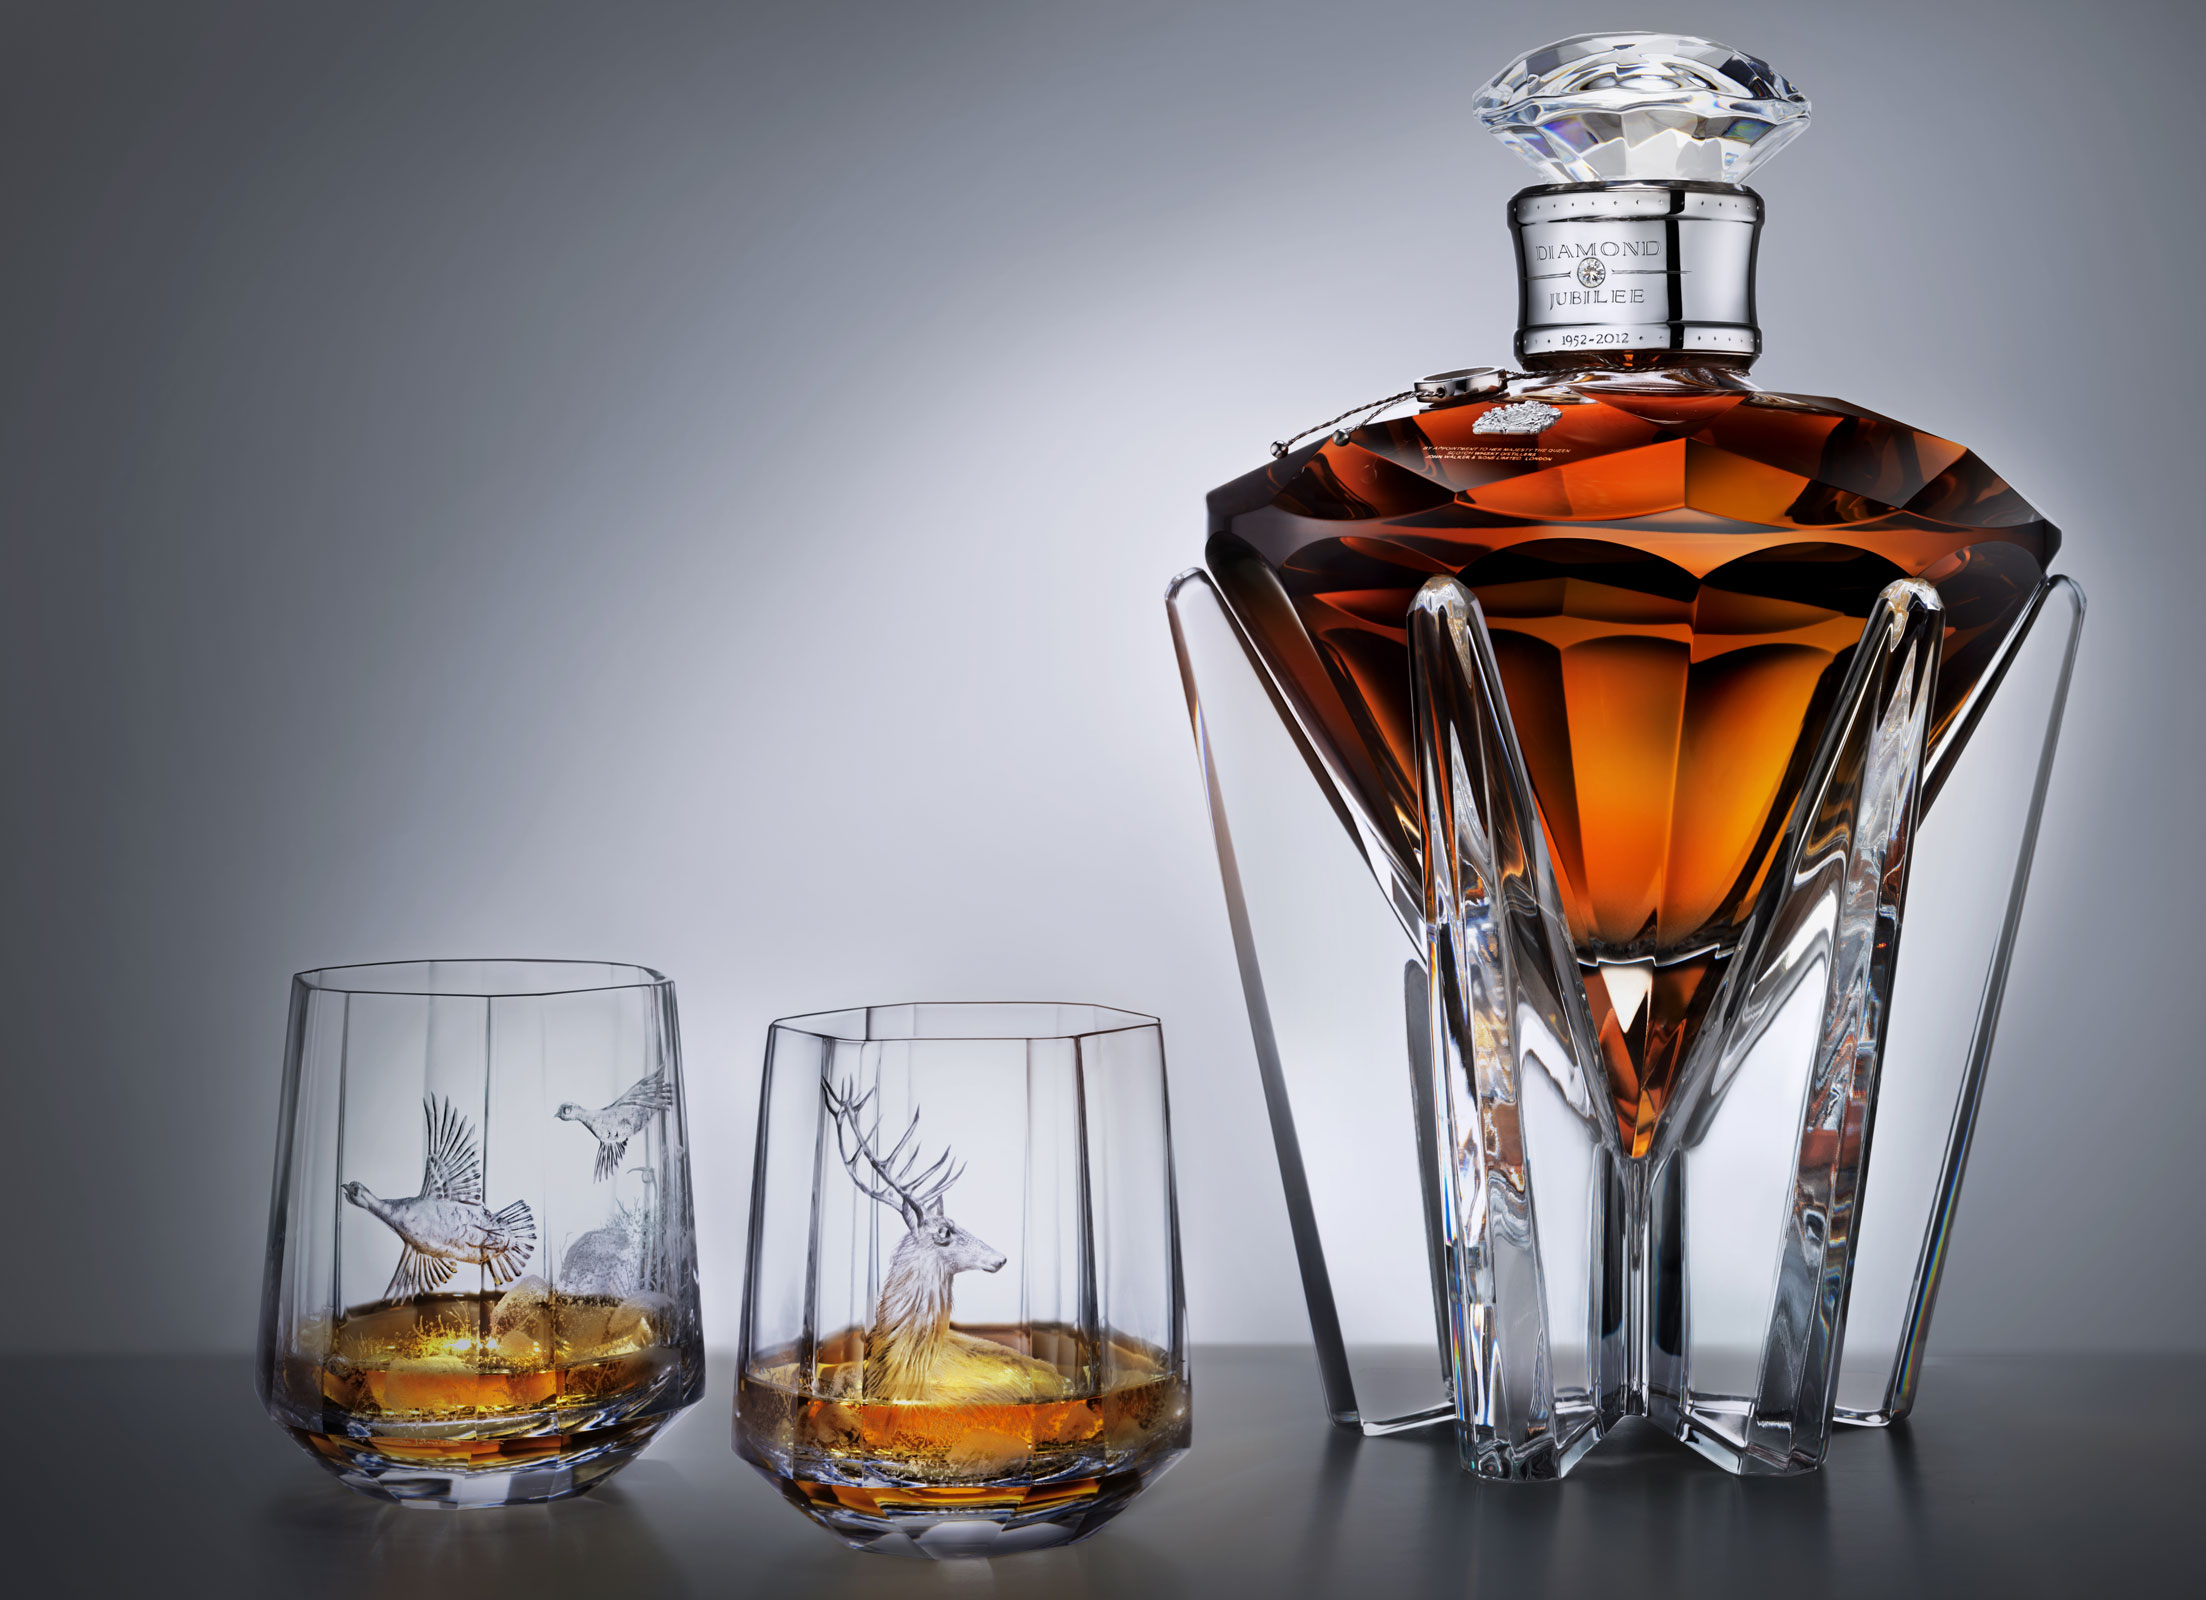 diamond jubilee whisky by john walker sons extravaganzi. Black Bedroom Furniture Sets. Home Design Ideas